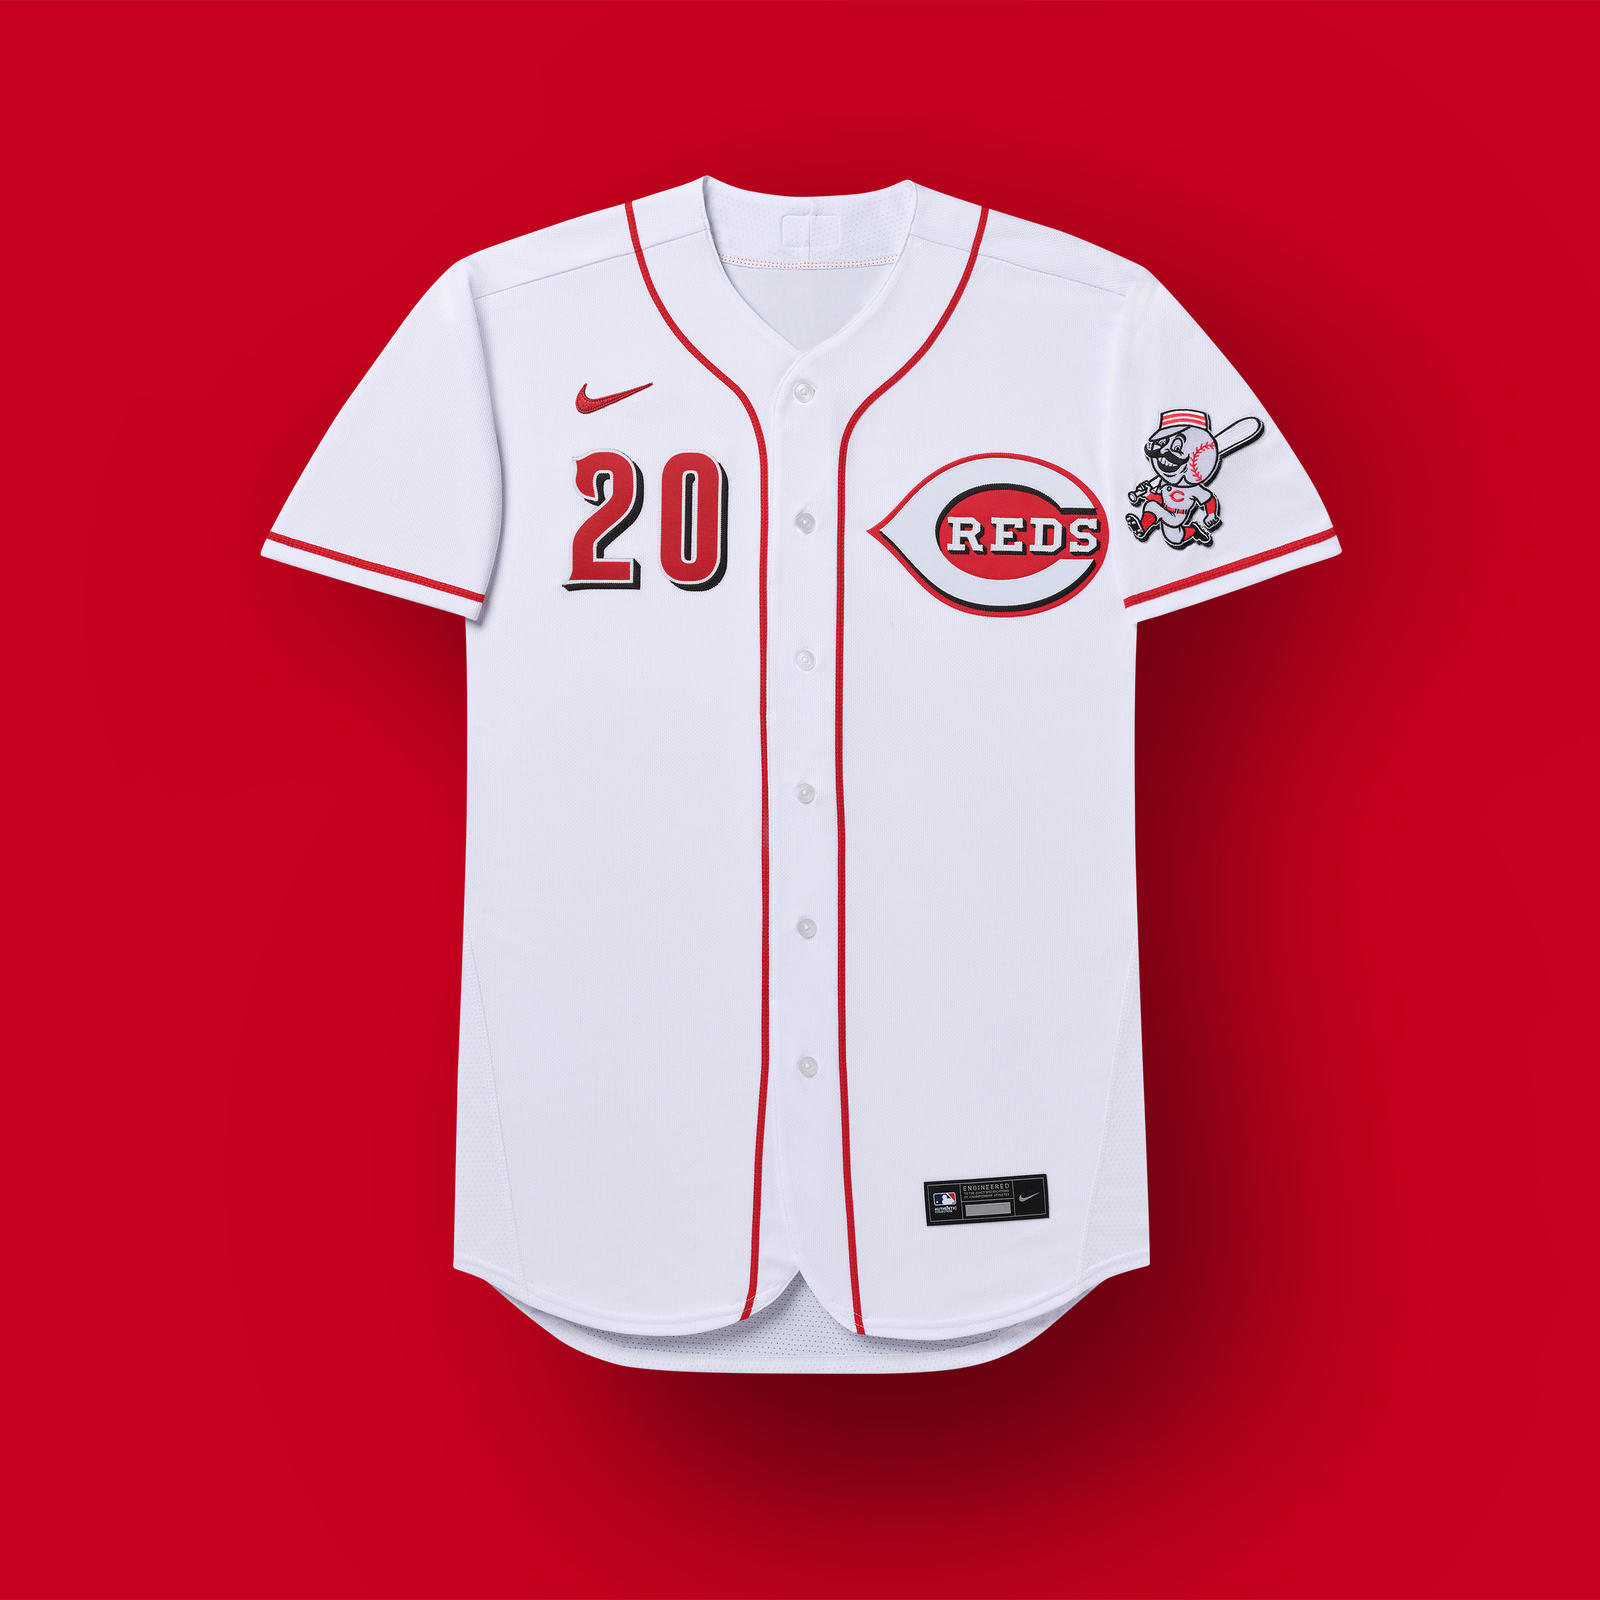 Nike x Major League Baseball Uniforms 2020 Official Images 27